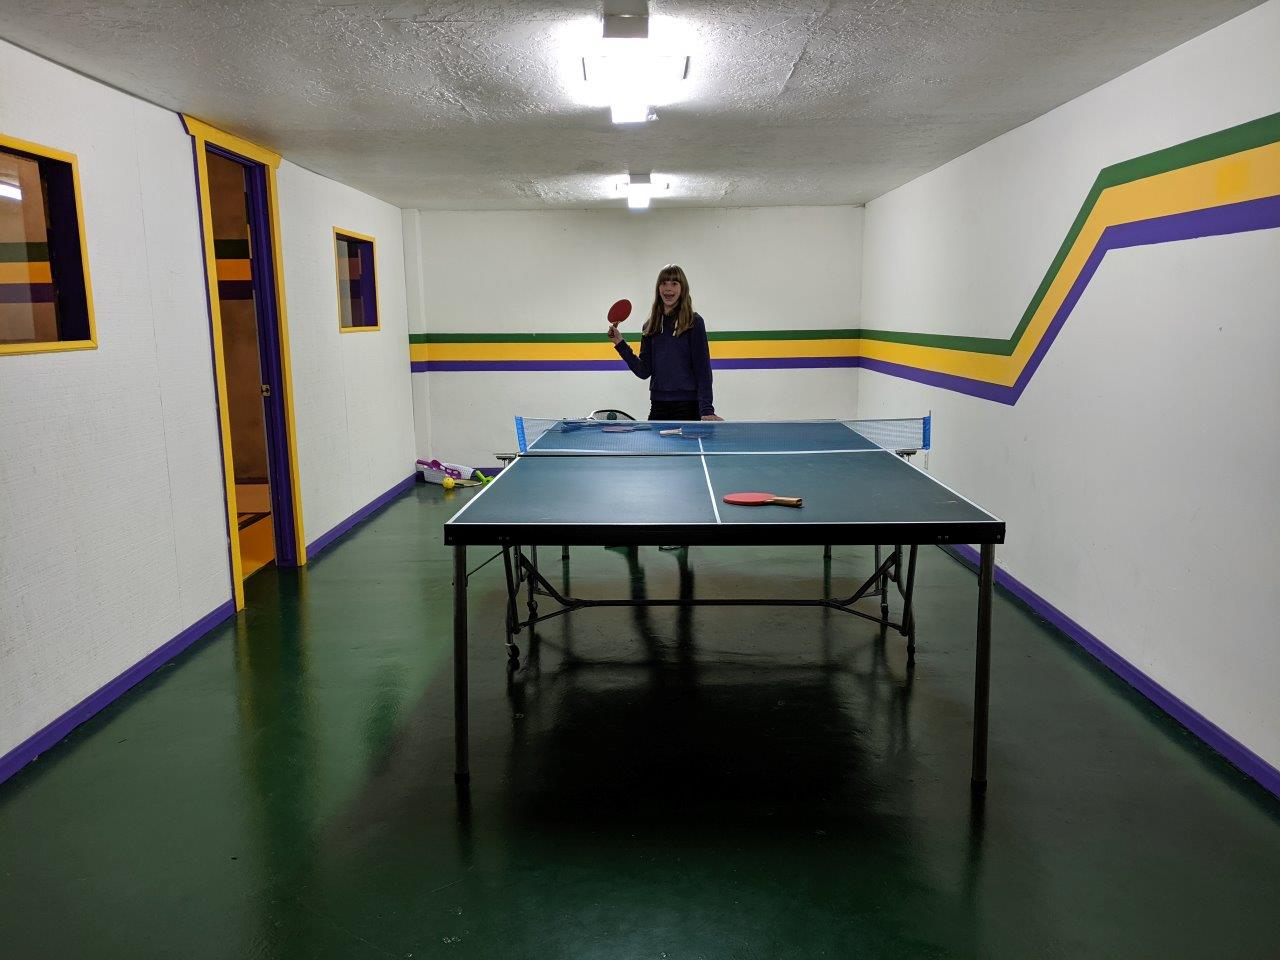 Salt-Lake-City-ping-pong-Airbnb